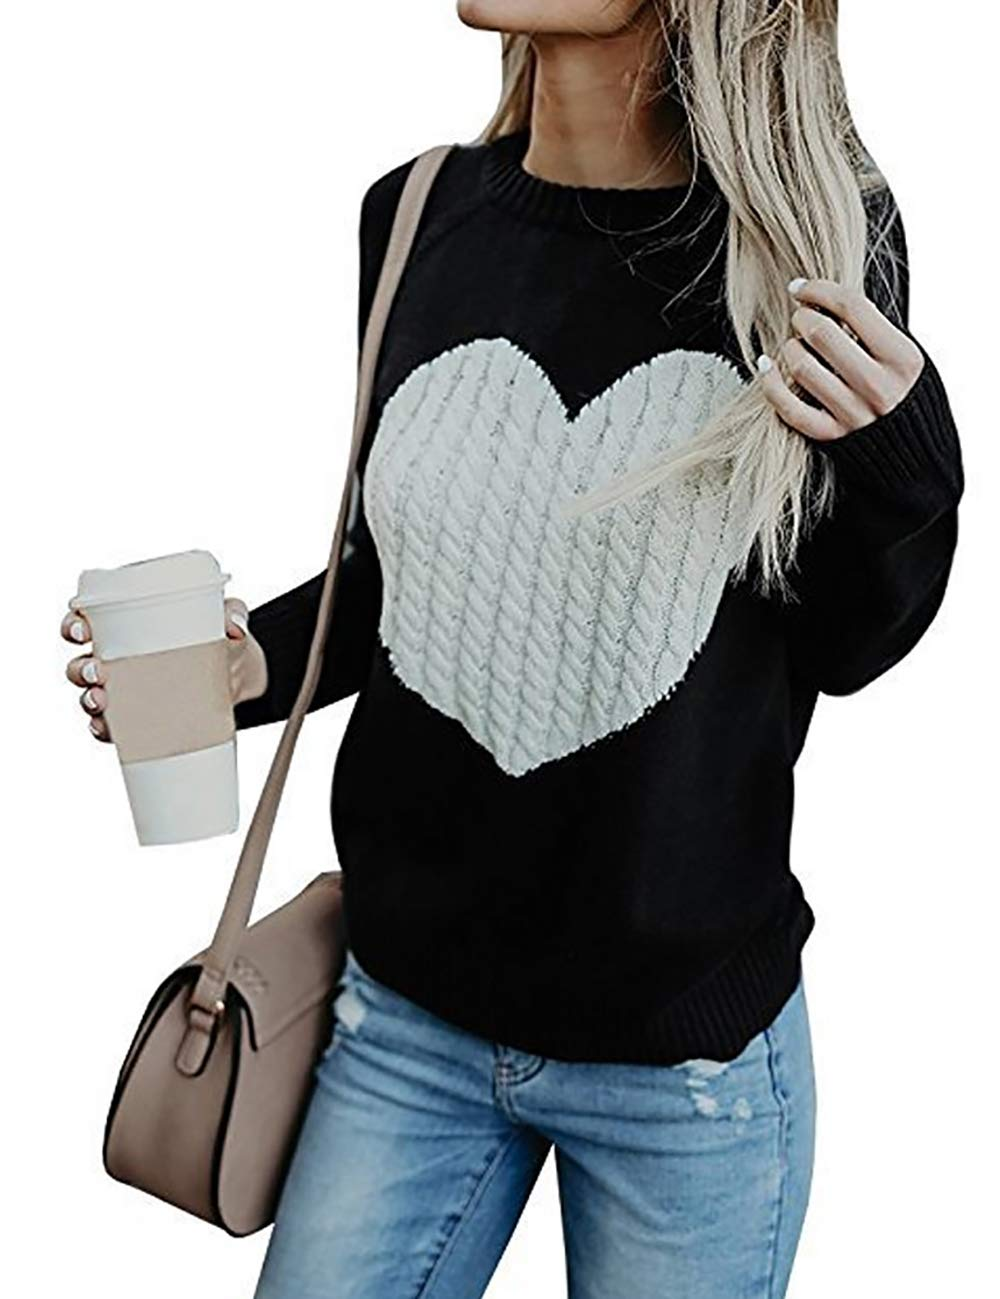 shermie Women's Pullover Sweaters Long Sleeve Crewneck Cute Heart Knitted Sweaters Black M